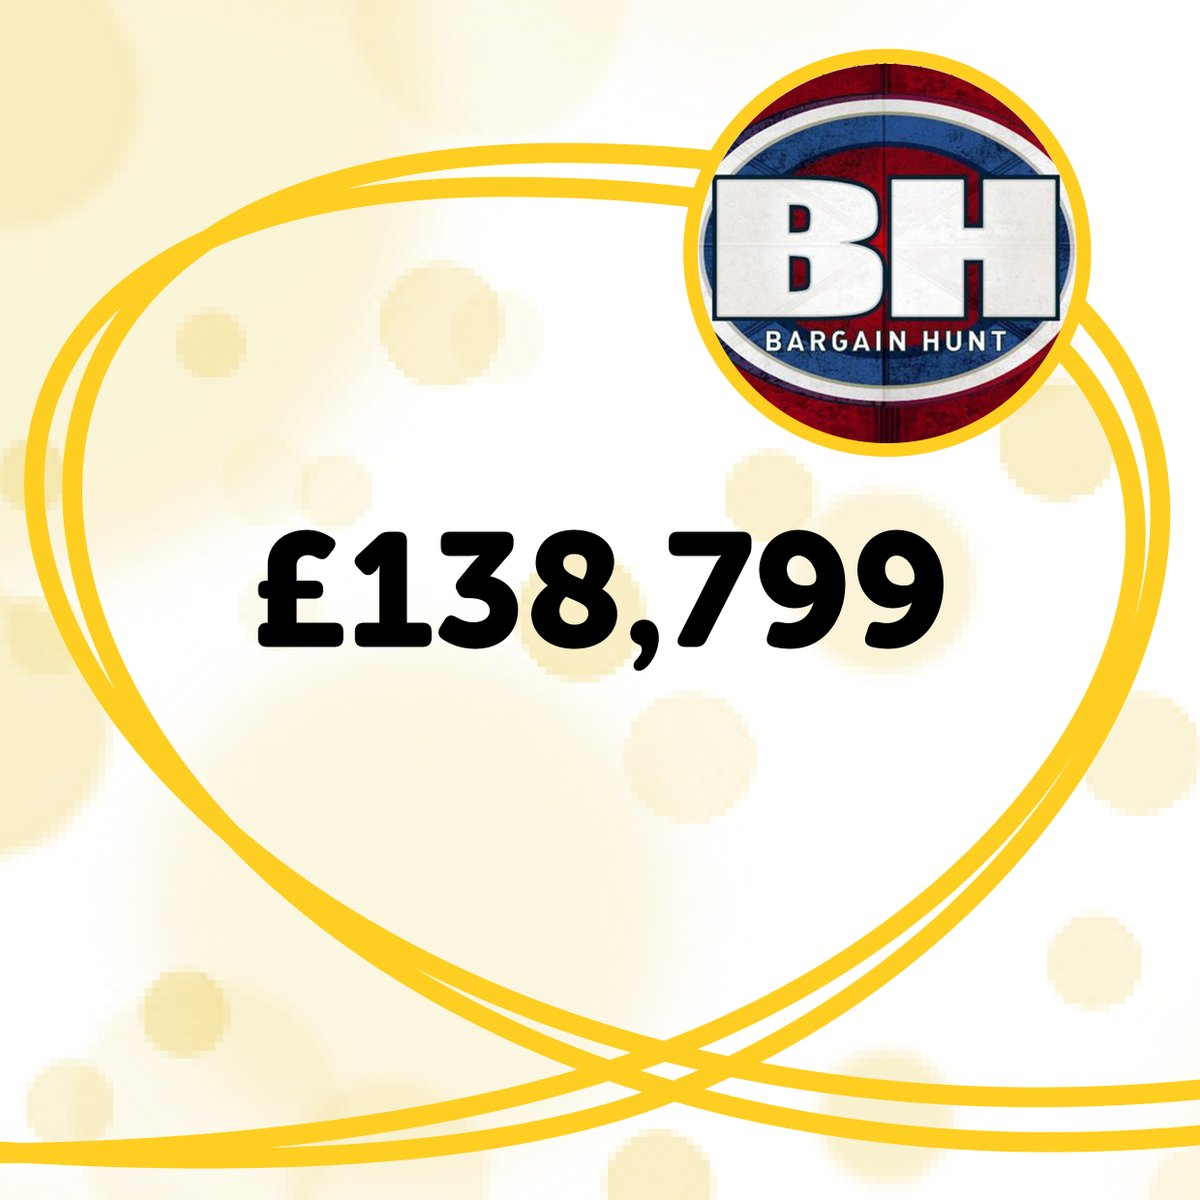 Thank you so much to @BBCBargainHunt for raising £138,799 in donations during their #ChildrenInNeed special 💛